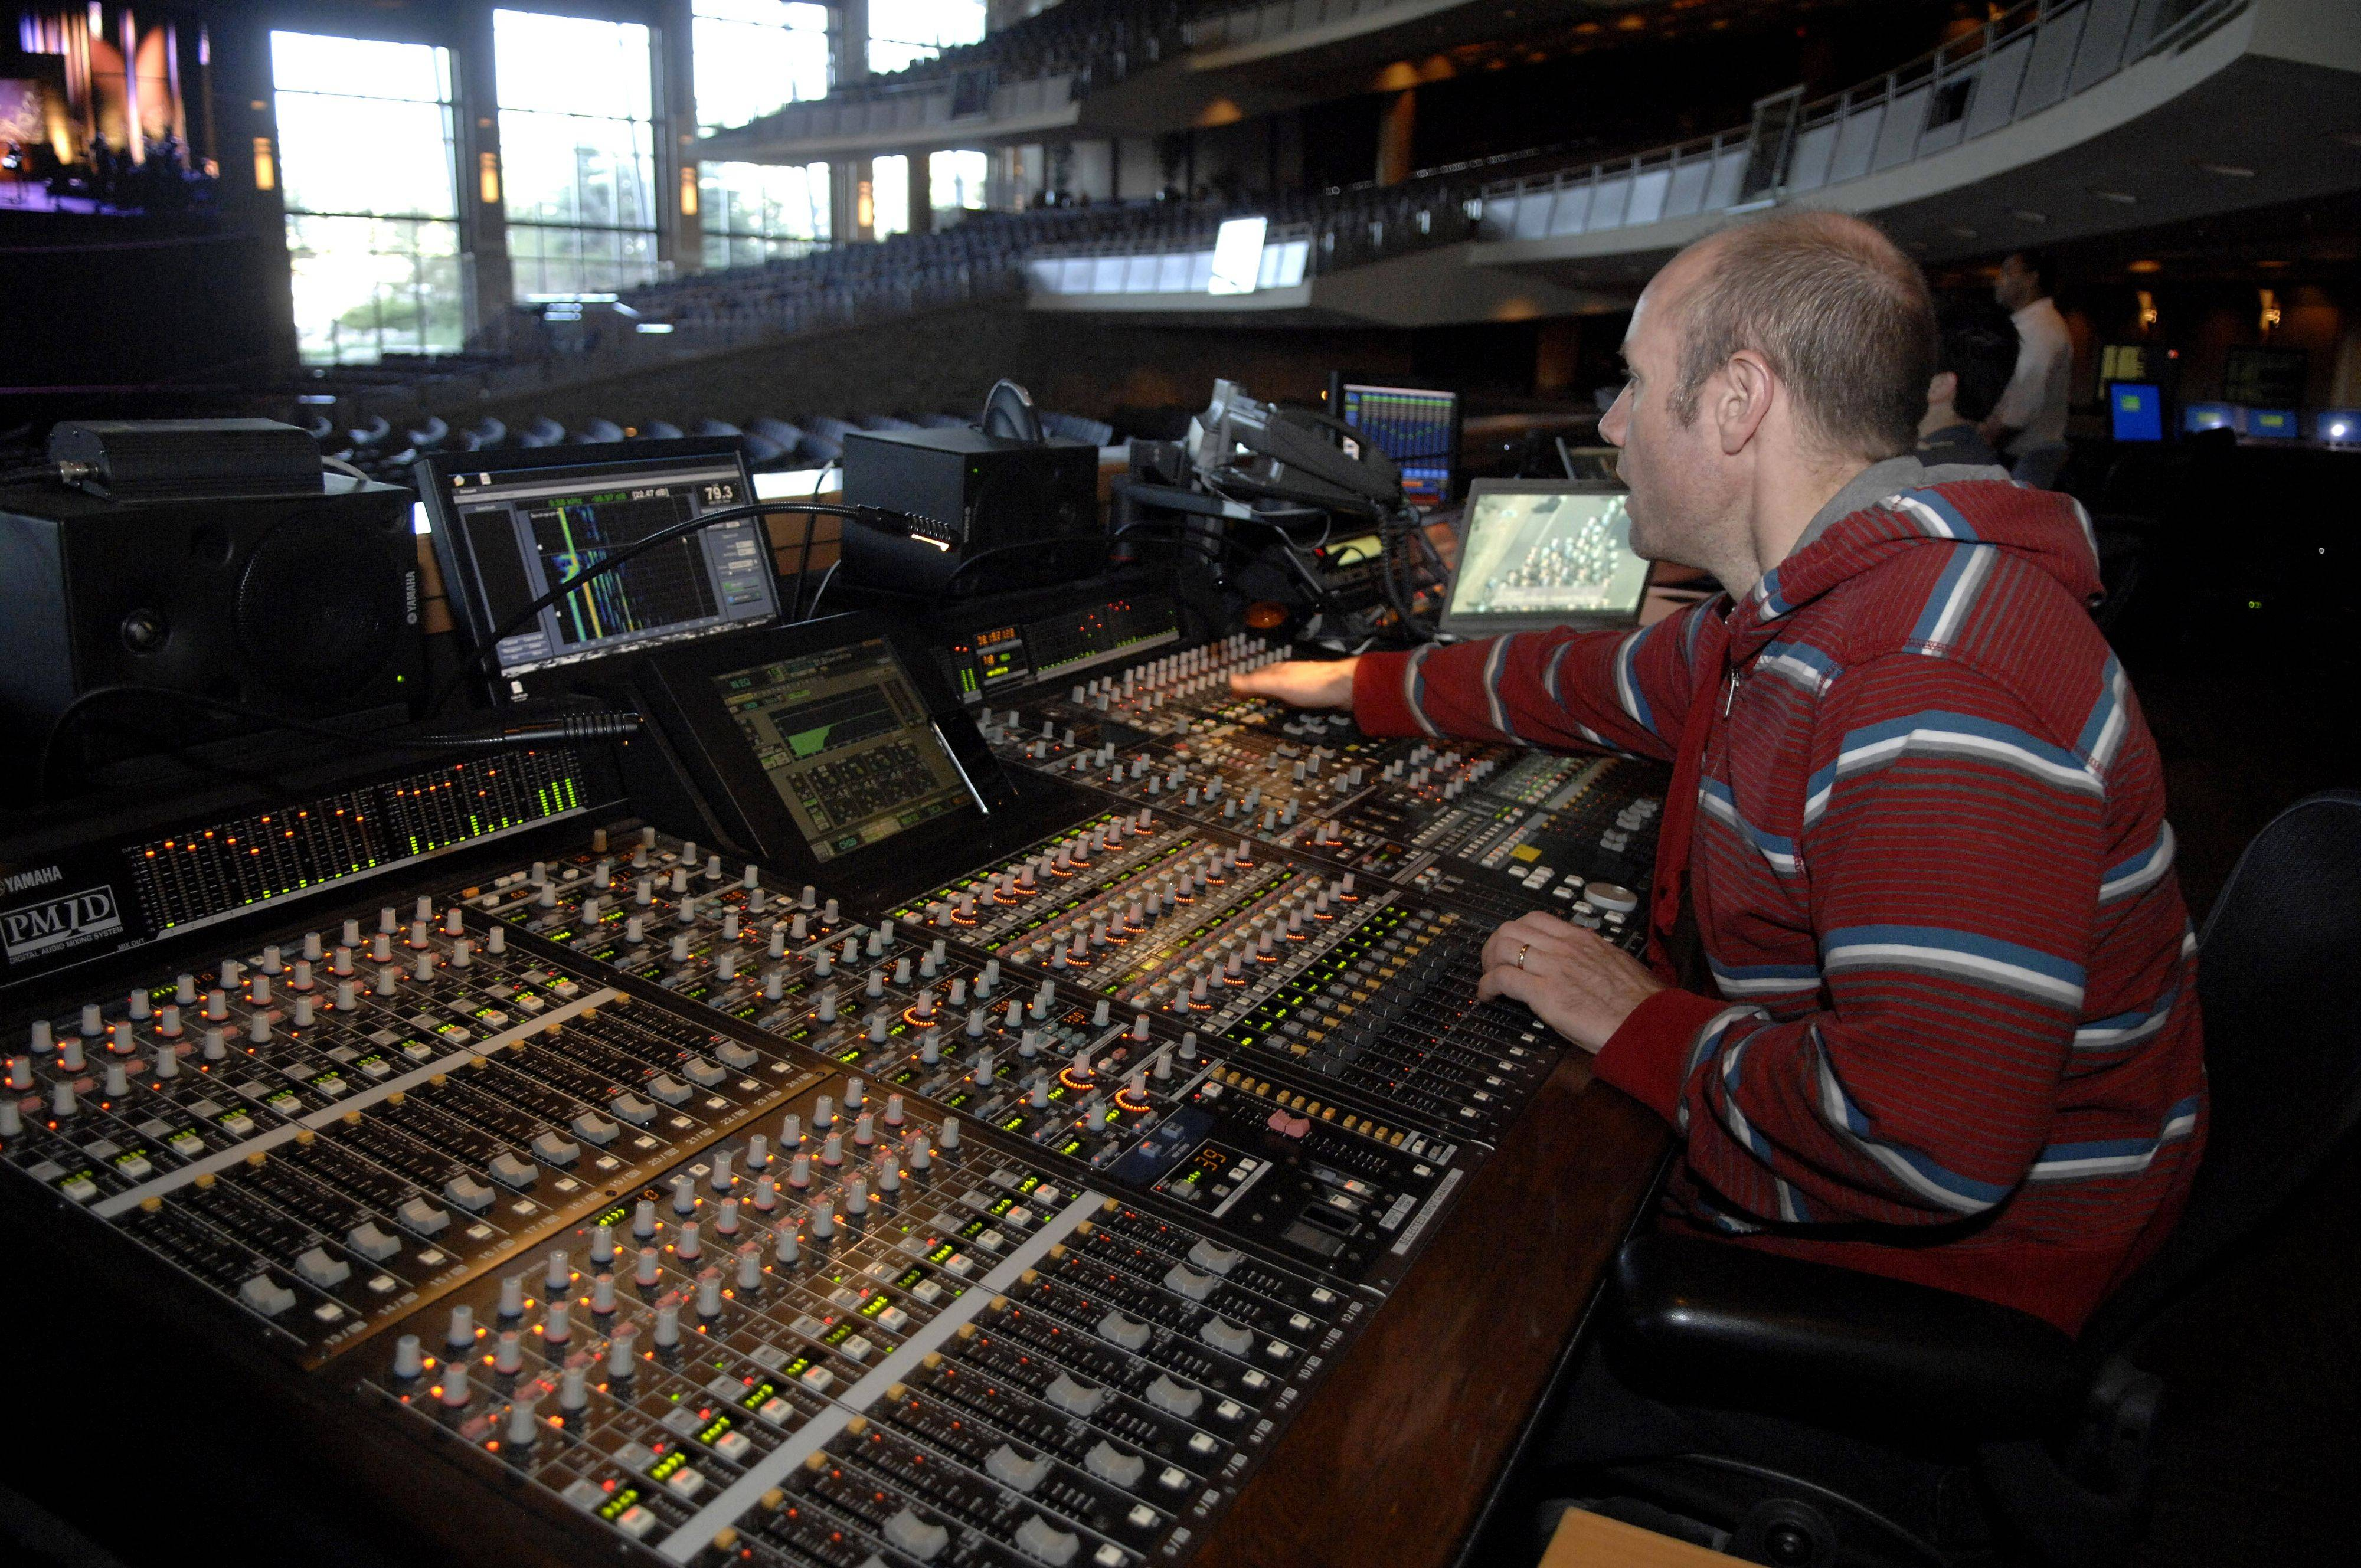 Staff audio engineer Ron Cook controls the mixing board during a full rehearsal at Willow Creek Church in South Barrington before the first service of the day.